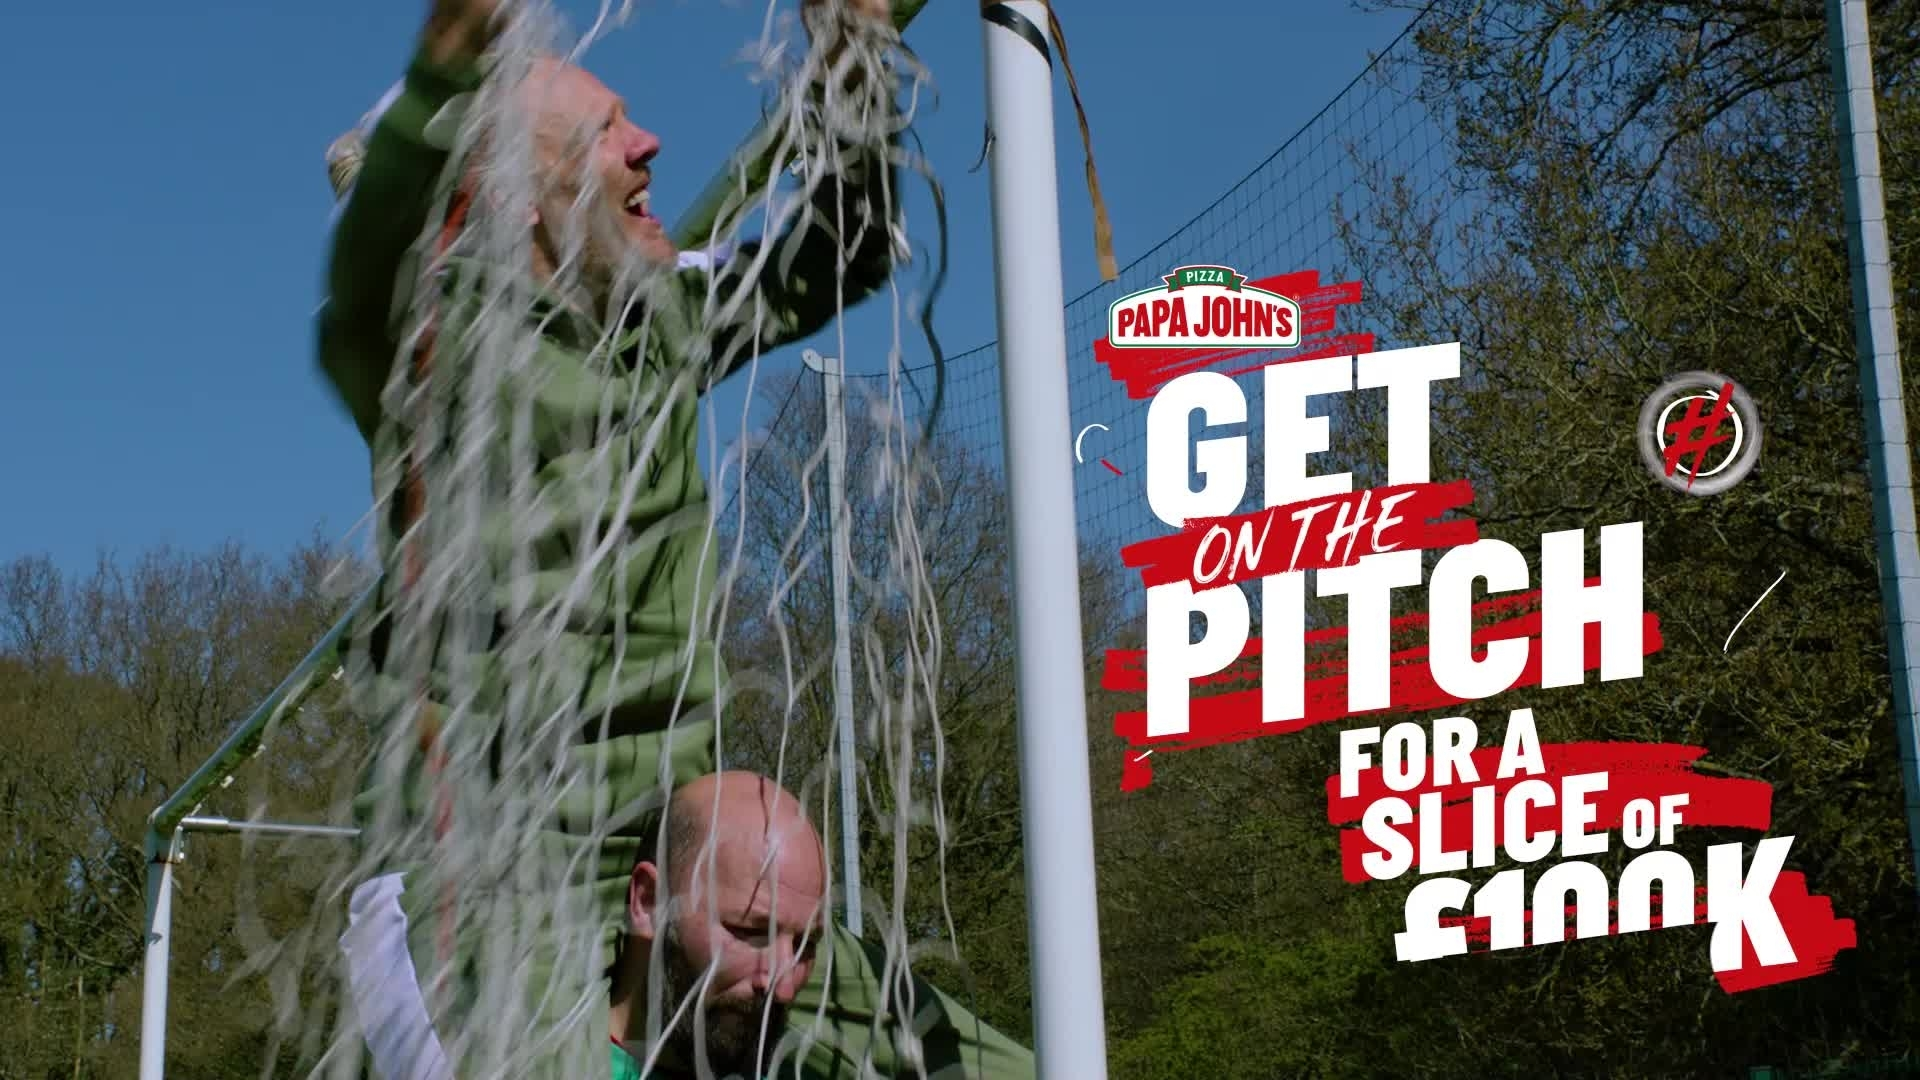 Get On The Pitch and grab a slice of £100K